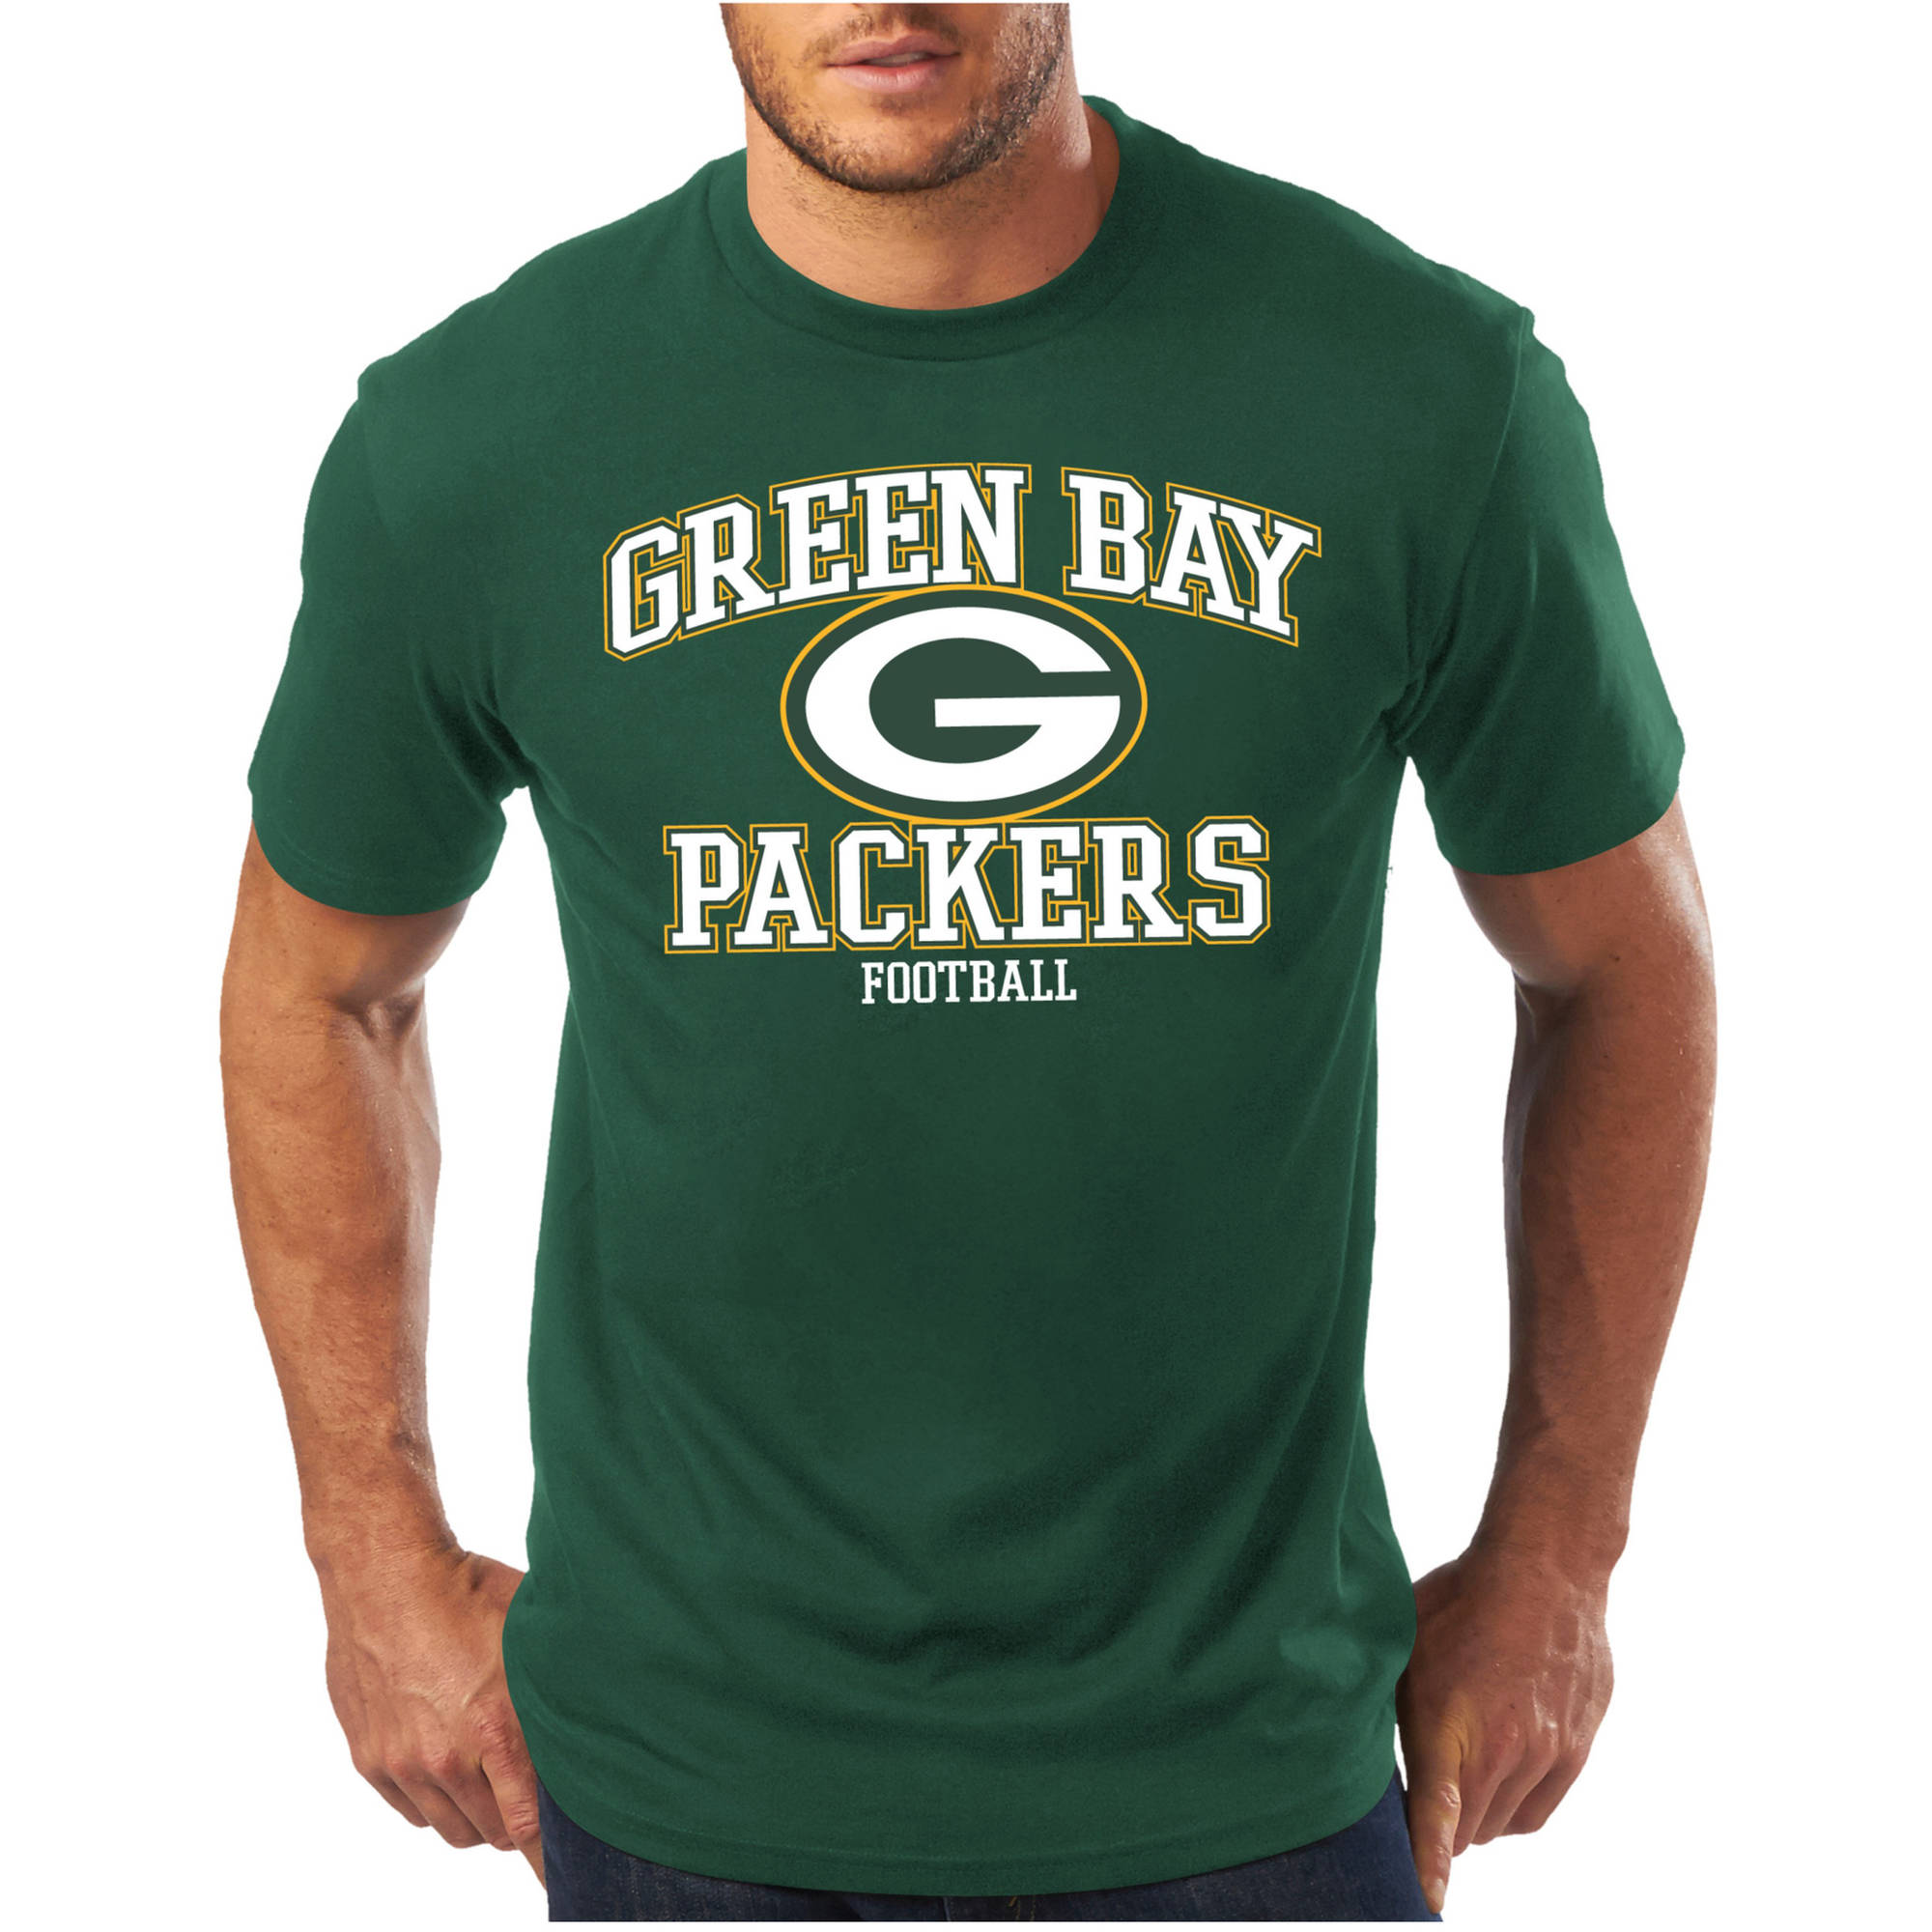 NFL Big Men's Green Bay Packers Short Sleeve Tee